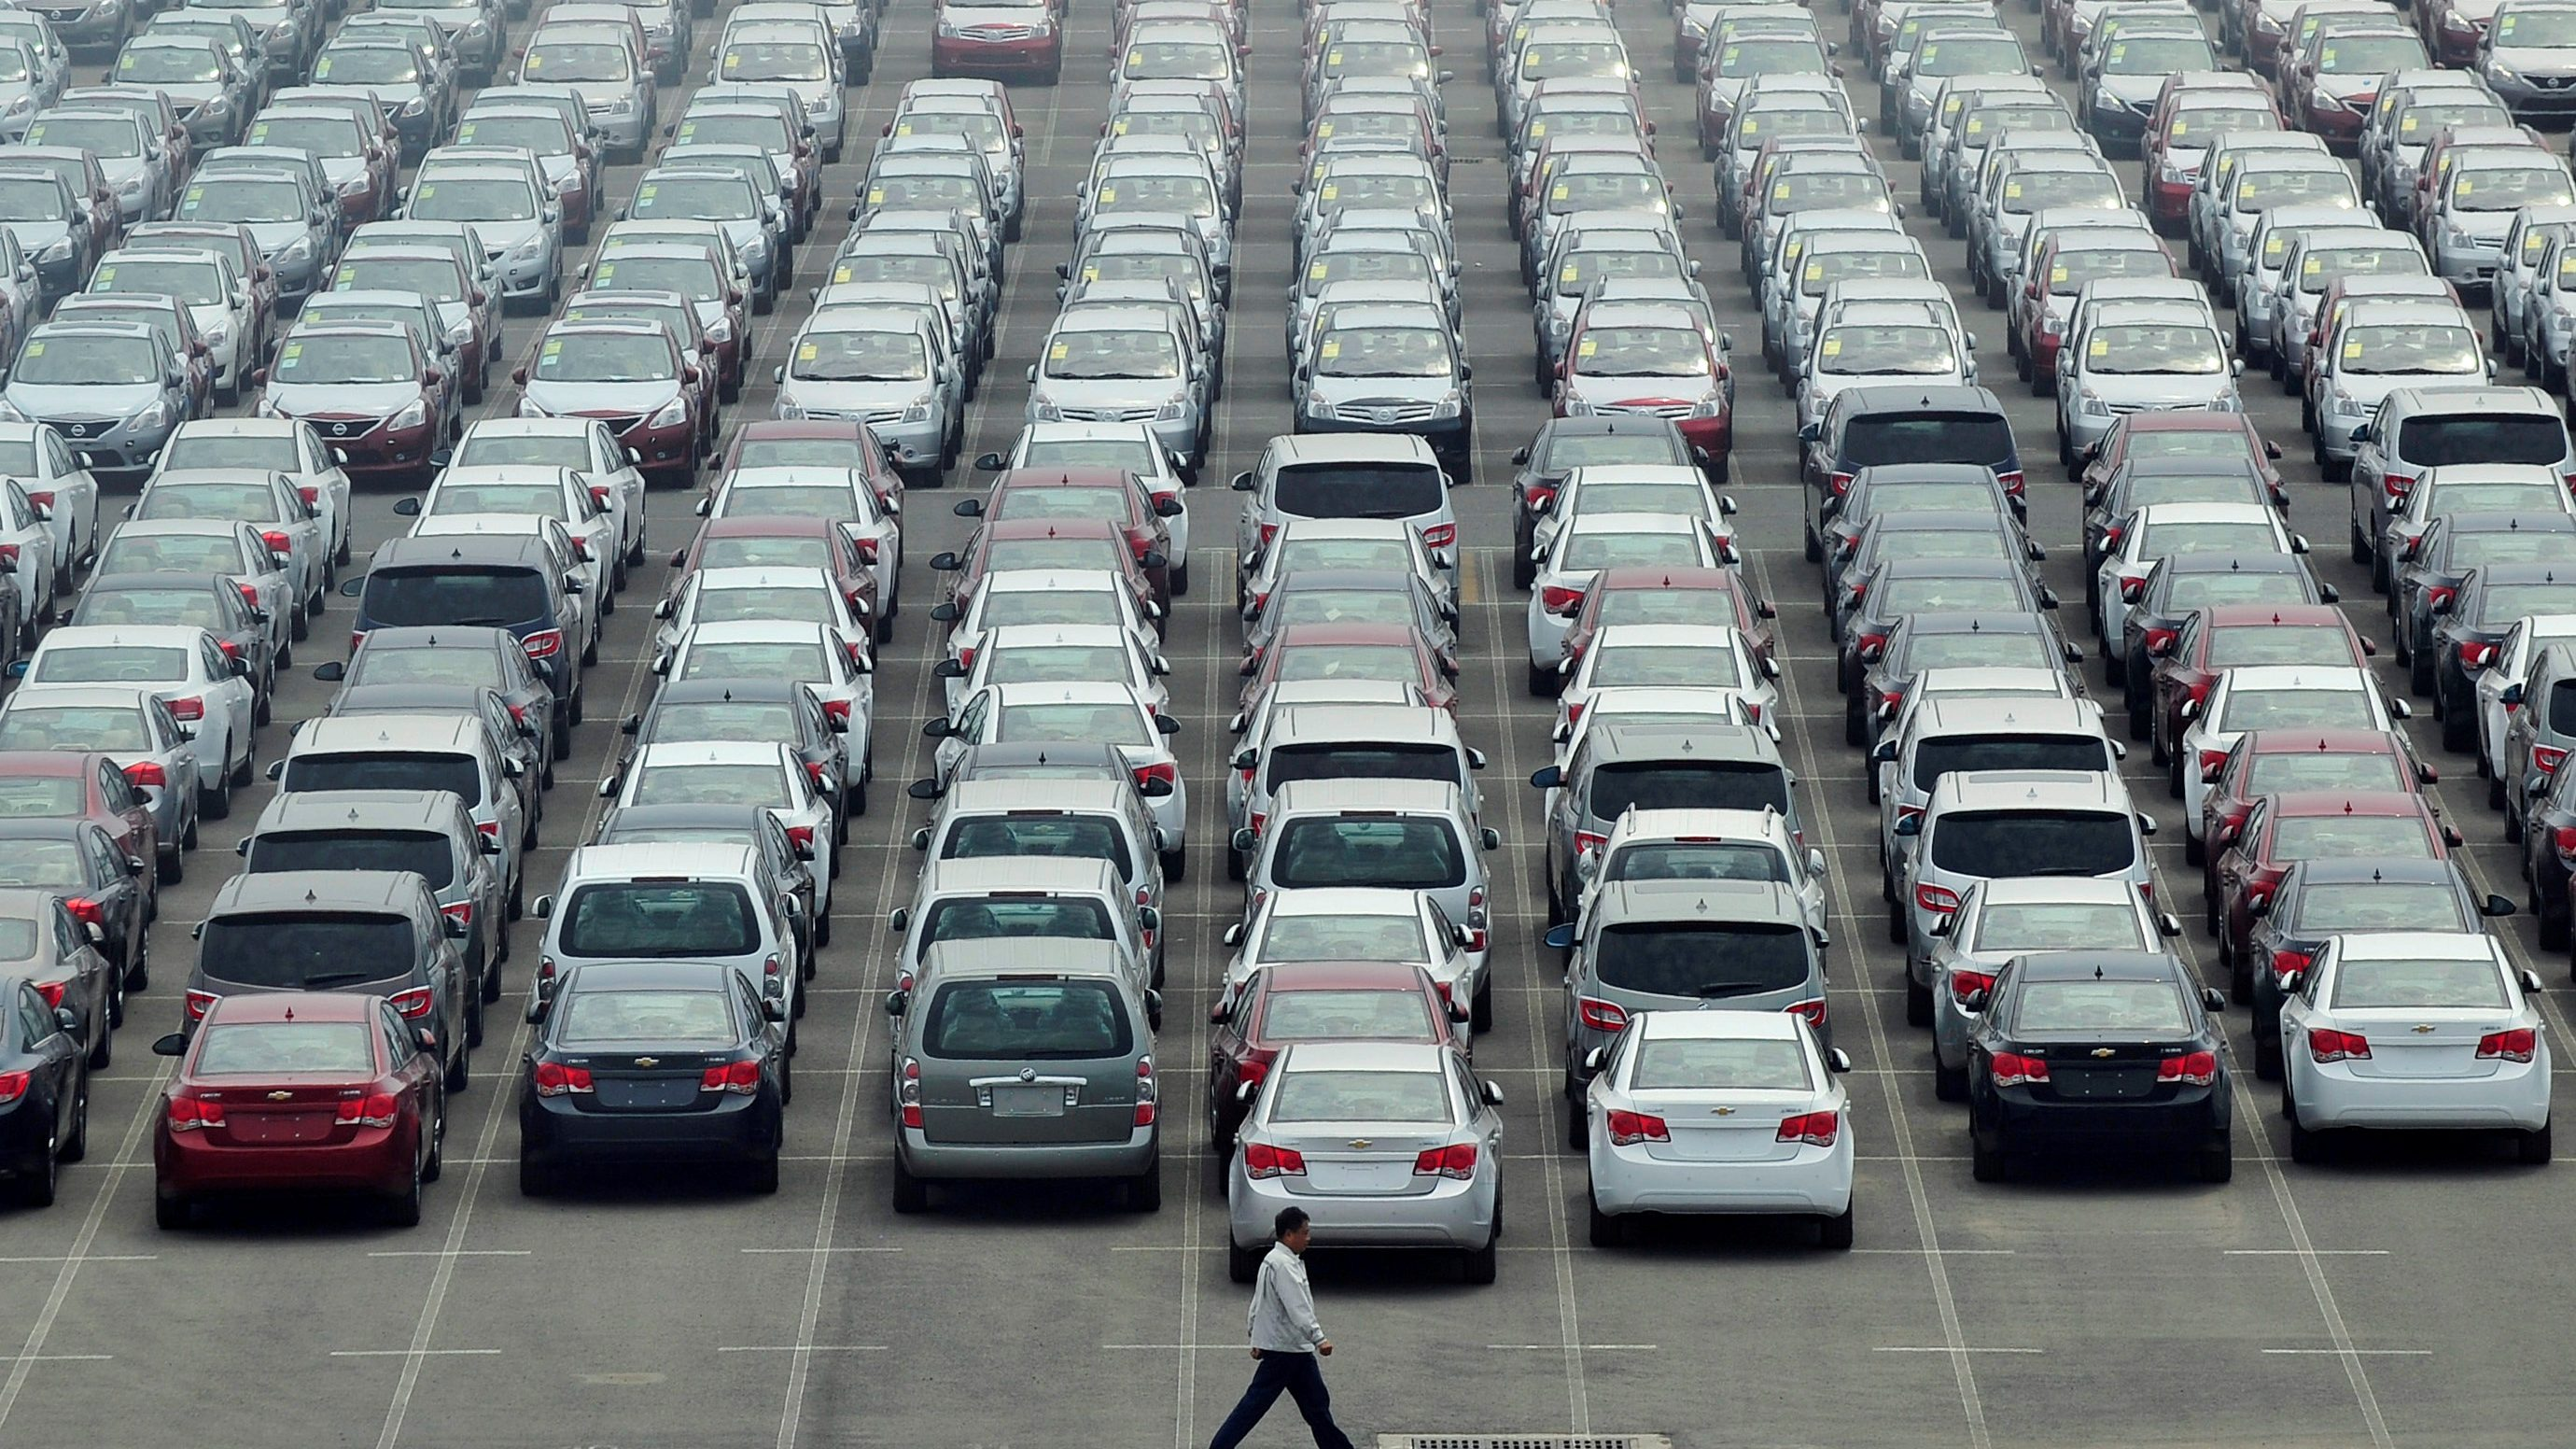 A man walks past a parking lot at Dayaowan port of Dalian, Liaoning province June 10, 2012. REUTERS/Stringer